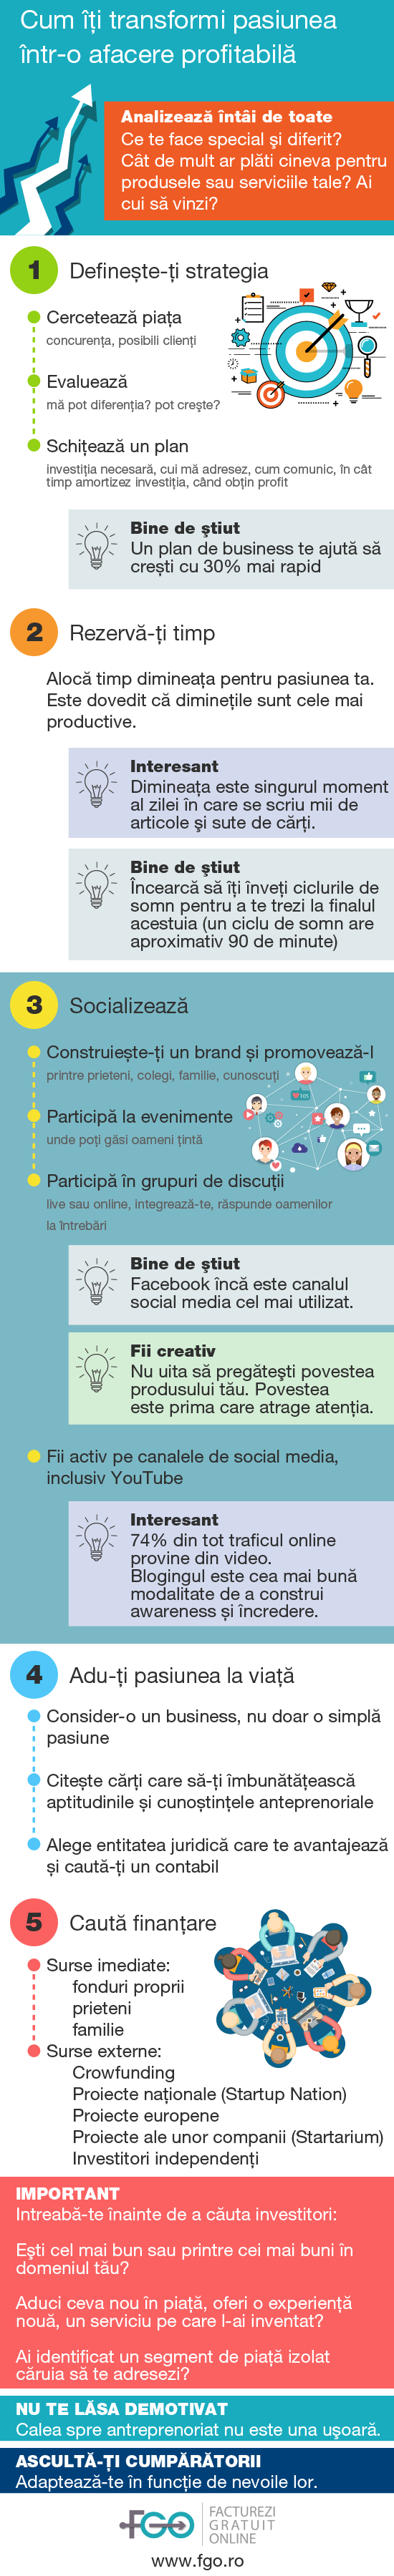 infografic-pasiunea-in-business